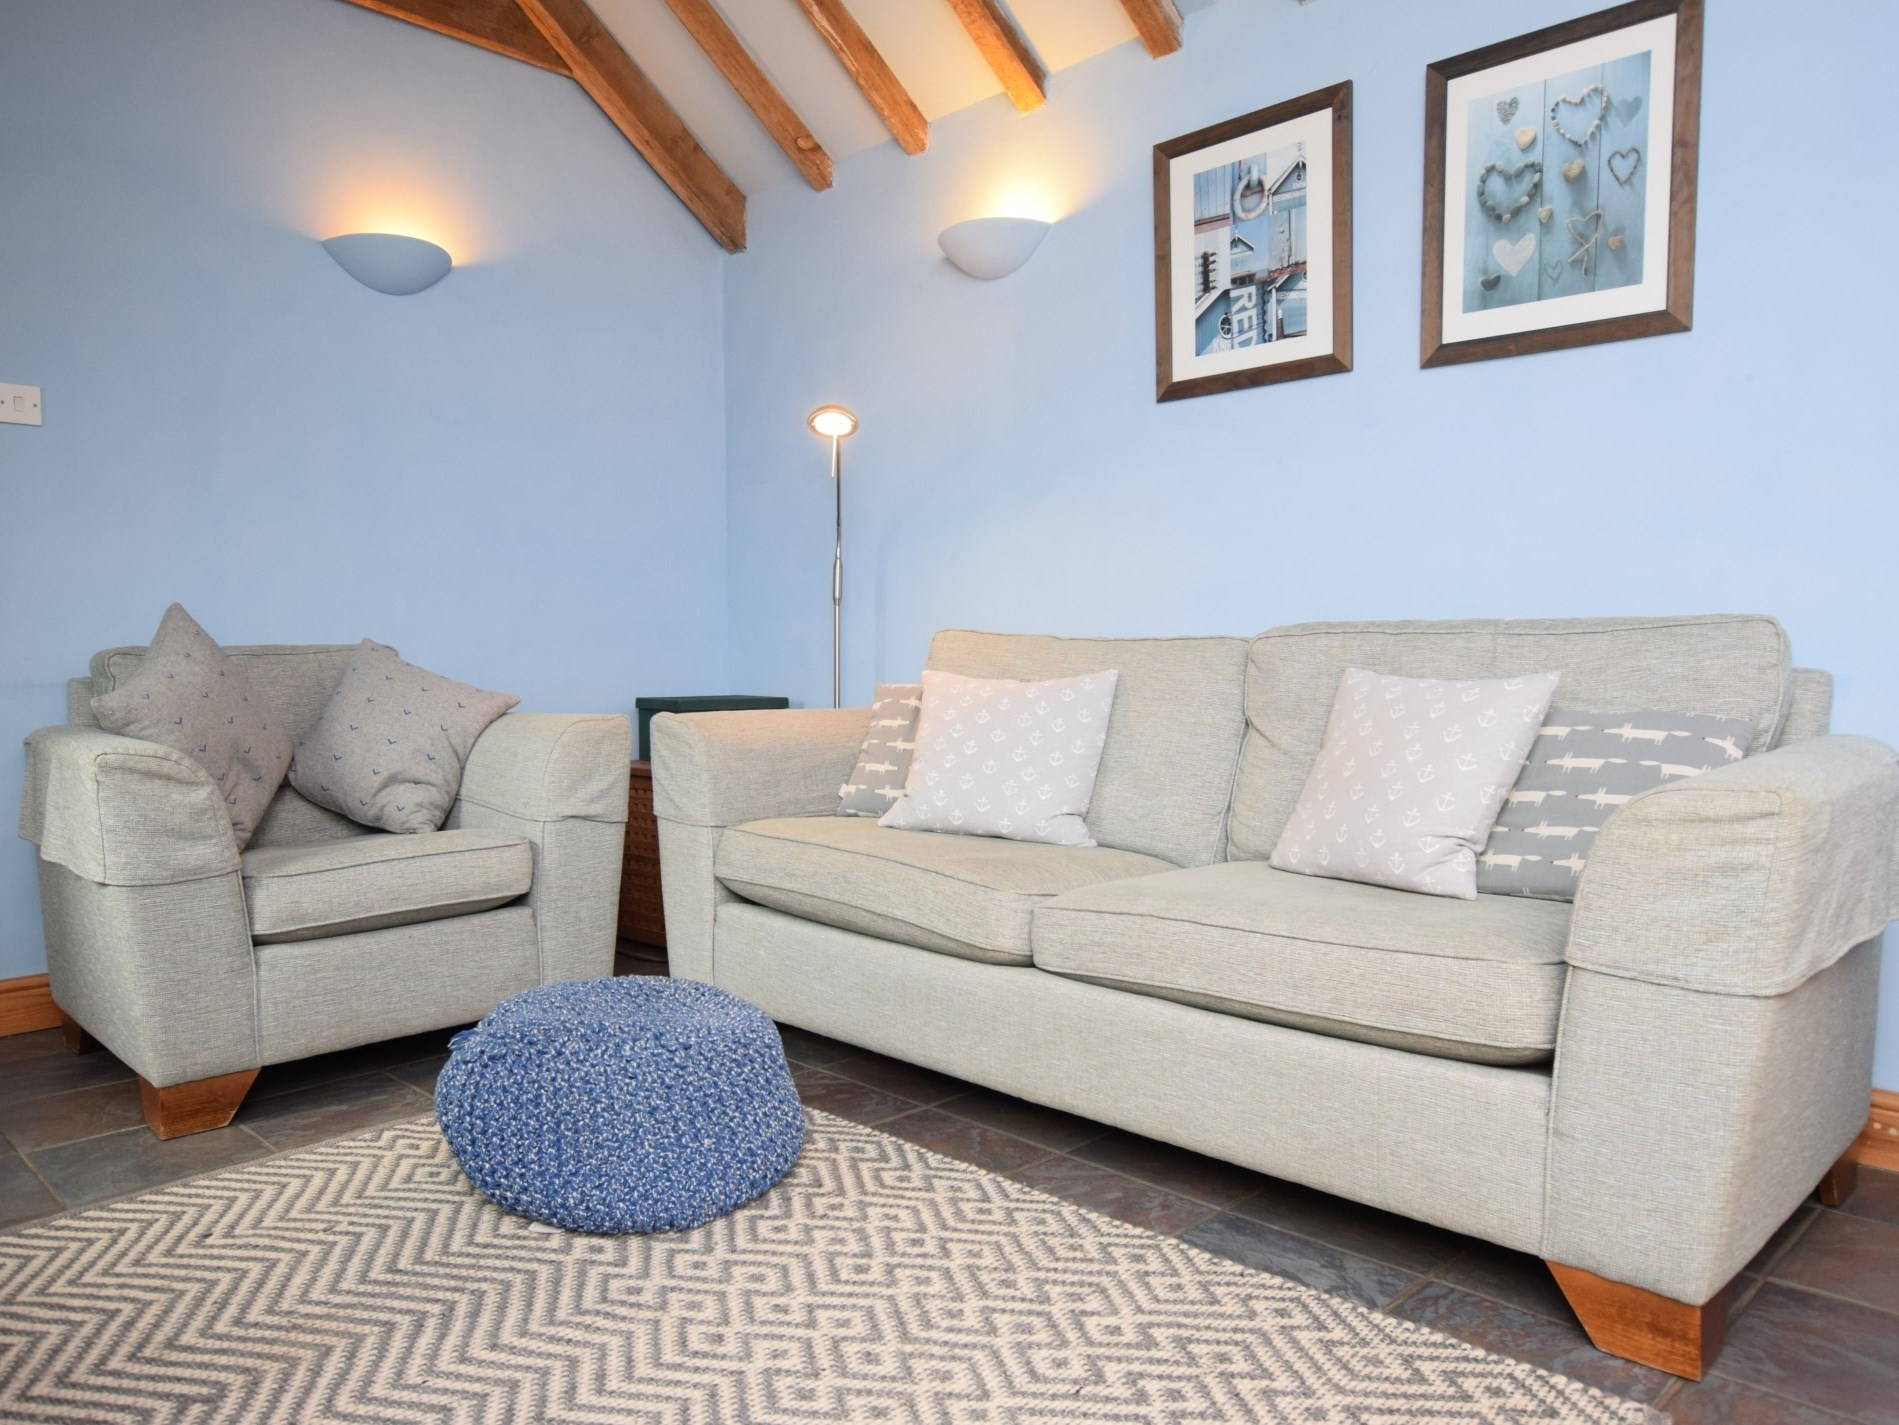 2 Bedroom Cottage in Holt, East Anglia